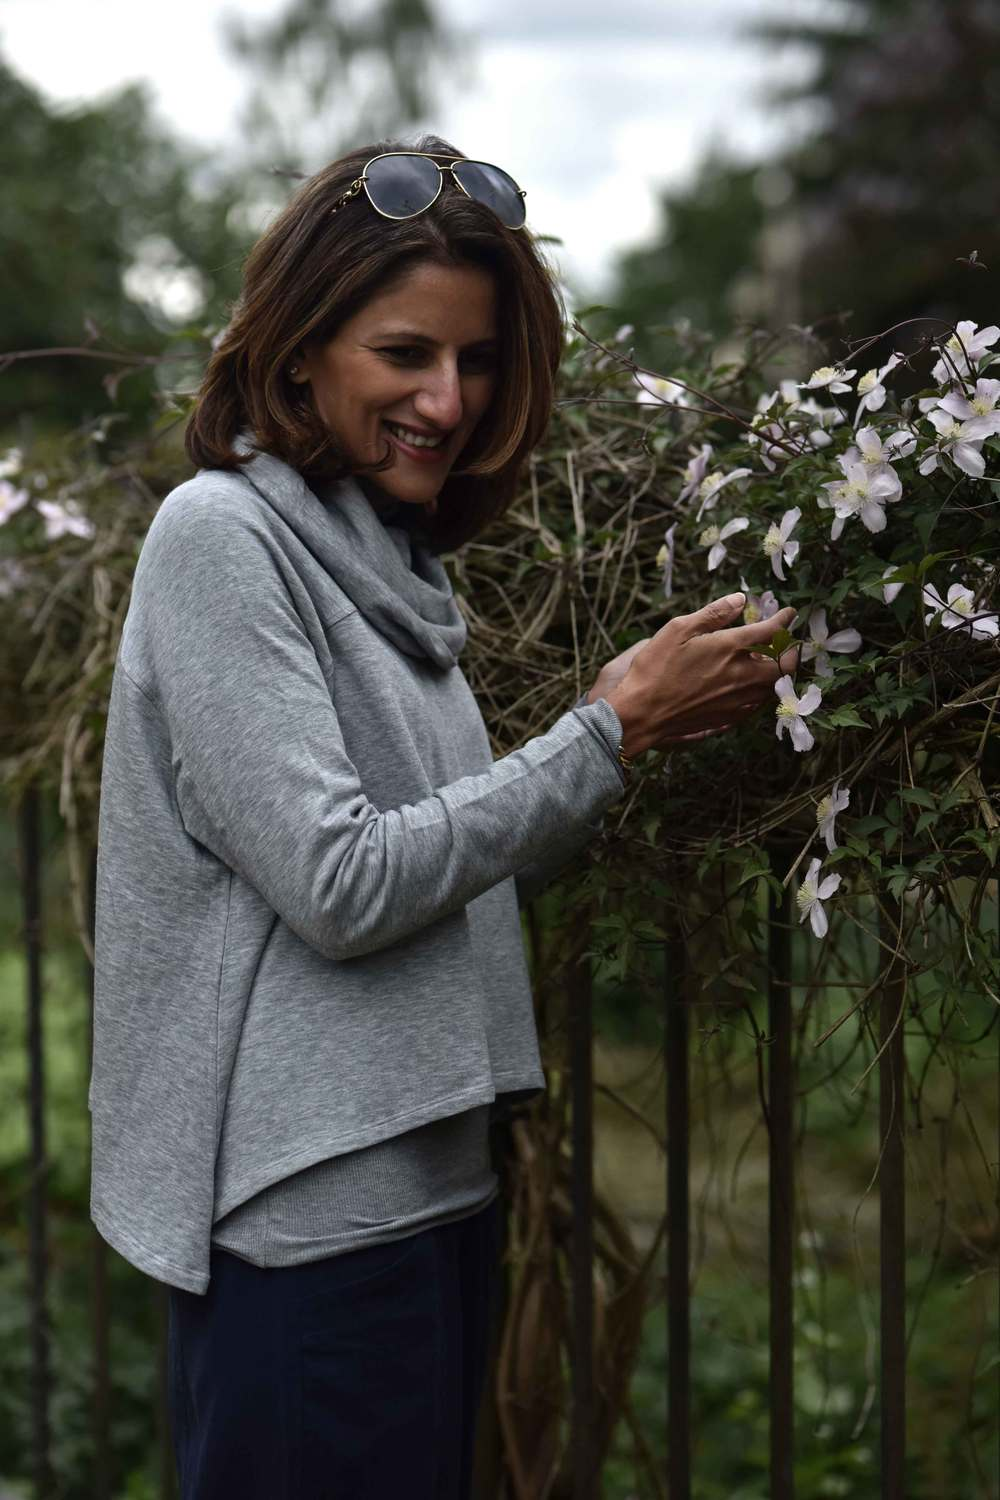 Happy with flowers. Eileen Fisher Funnel Neck Drapey Tencel Terry Cropped Top in Moon. Image©sourcingstyle.com, Photo: Nicola Nolting